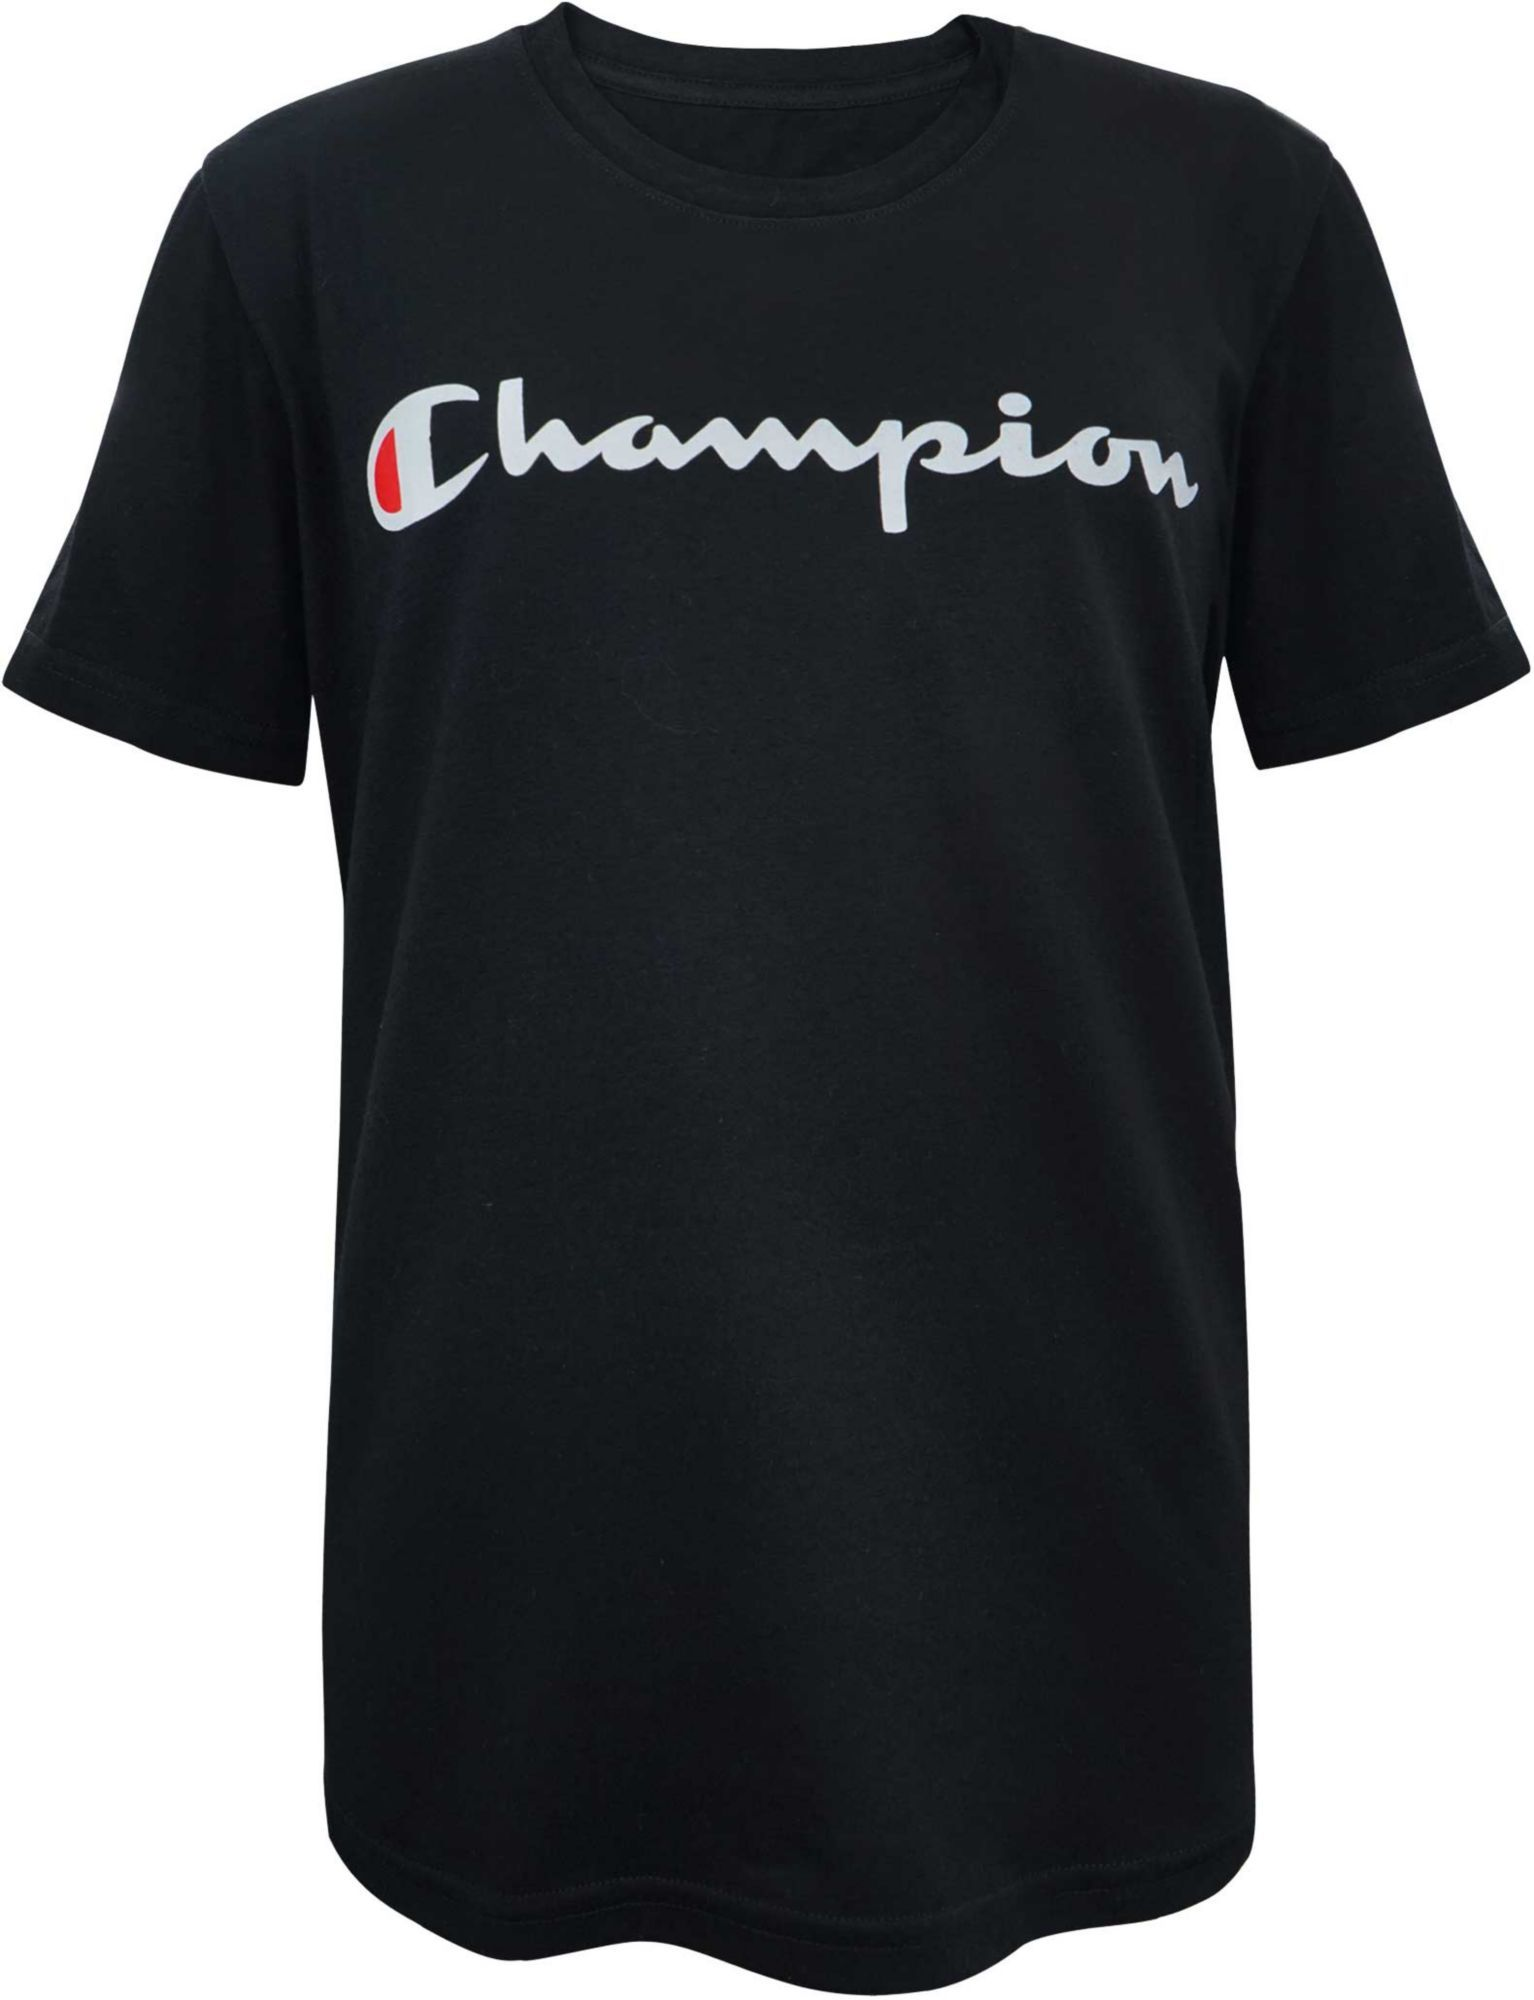 313b5c30b Champion Boys' Heritage Graphic Tee in 2019 | Products | Graphic ...